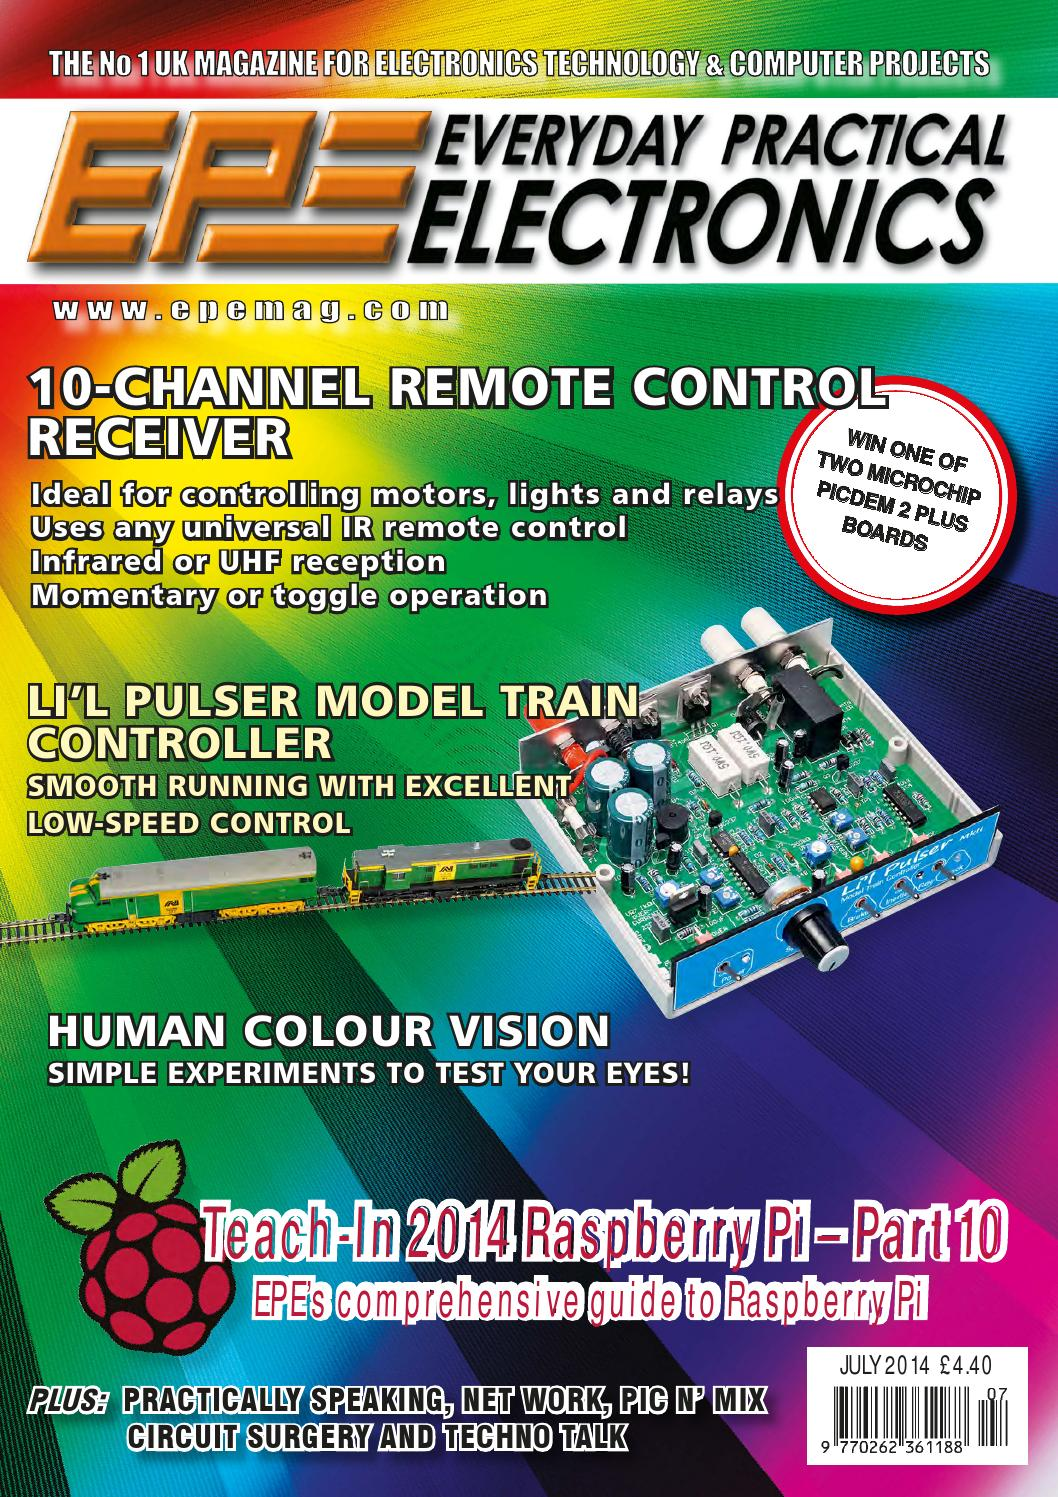 Everyday Practical Electronics 2014 07 By Yurgen Issuu Circuit Board Artwork Stripboard And Breadboard Layout